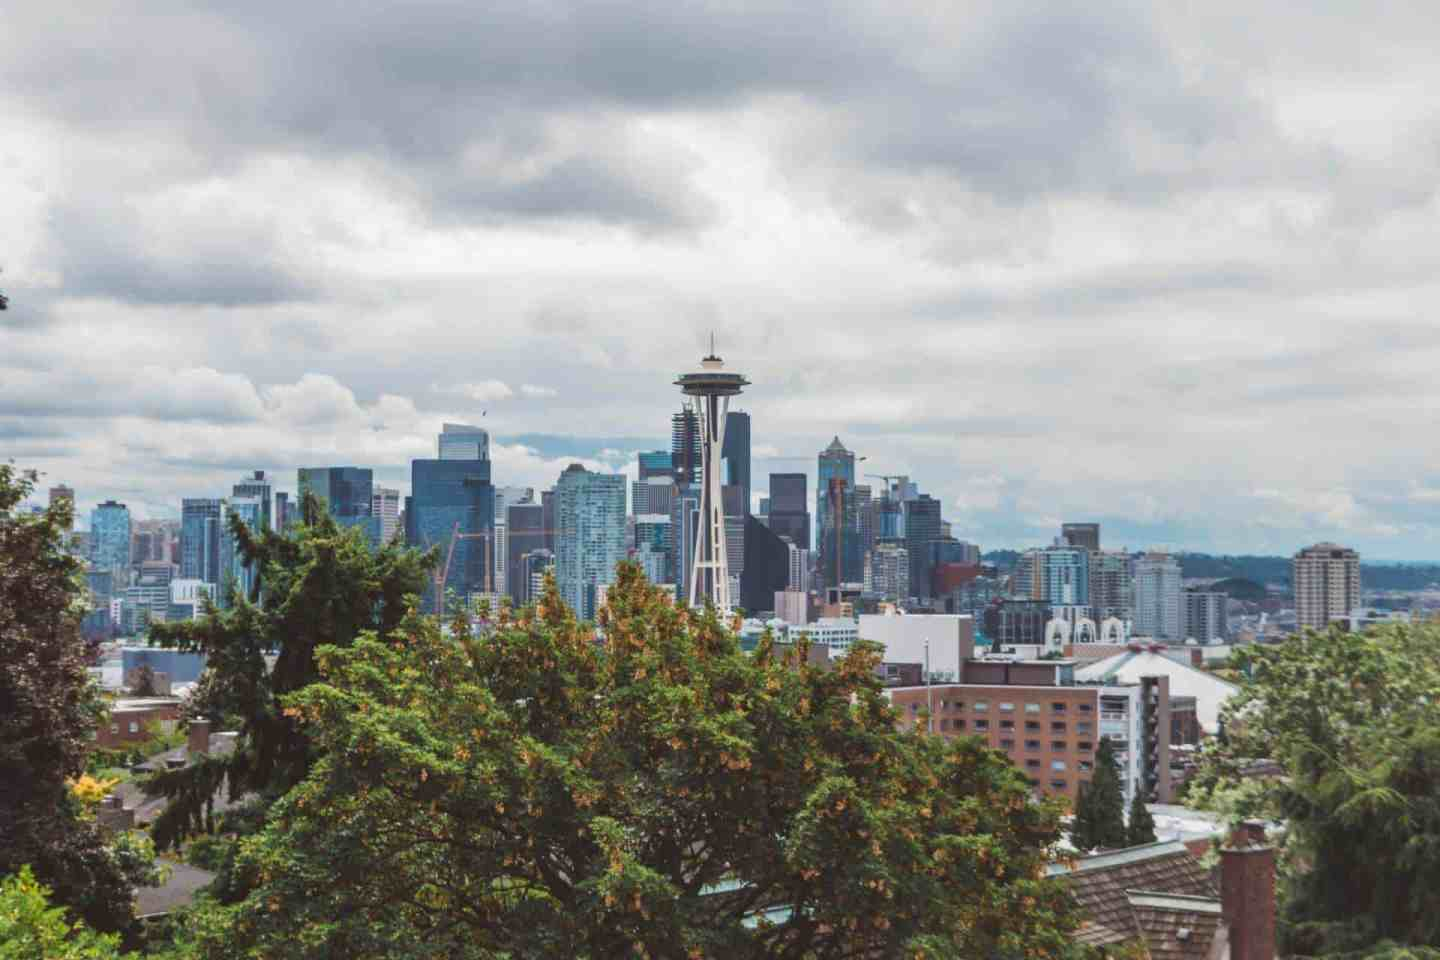 How to Spend a Day in the Seattle Rain; 6 Things to Do